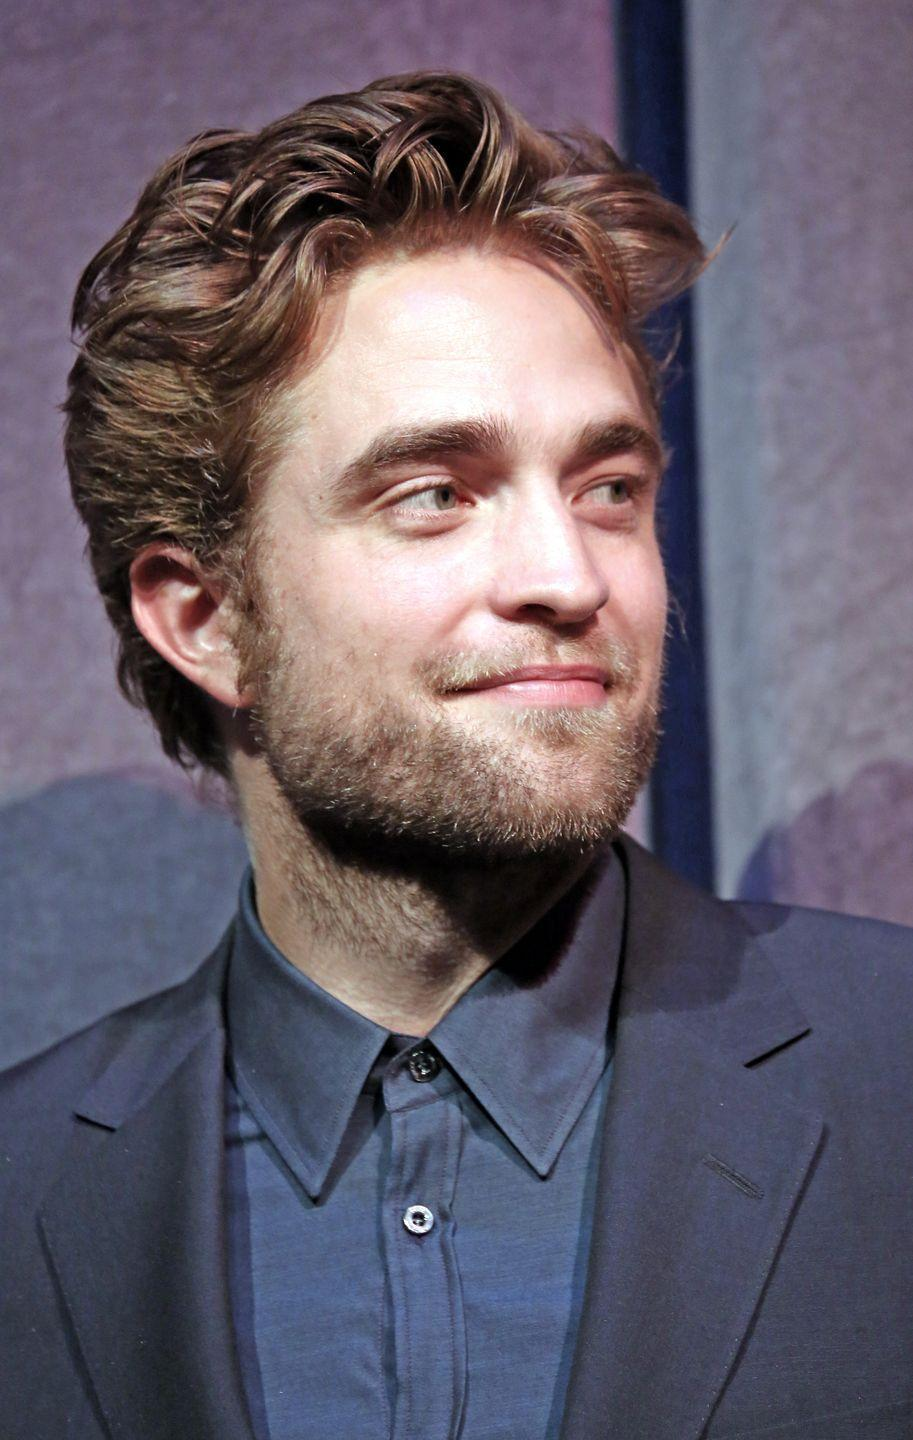 """<p>Pattinson is a master of this kind of two-texture vibe that a lot of hair textures and styles can pull off. The top is pieced and tousled, but the sides are pushed back. </p><p>This is where something DeZarate calls """"product cocktailing"""" comes into use: You use different products for different spots on your head. This is useful for this particular style and more generally for people with differently textured hair on different parts of their head. </p><p>On top, use something with a little shine and movable hold, like creams and those gel-serums. On the sides, you can use a thicker product, like<a href=""""https://www.amazon.com/Co-Motorcycle-Flexible-Gel-Fl/dp/B01B8DBYOS?tag=syn-yahoo-20&ascsubtag=%5Bartid%7C2139.g.33898672%5Bsrc%7Cyahoo-us"""" rel=""""nofollow noopener"""" target=""""_blank"""" data-ylk=""""slk:R+Co's flexible gel"""" class=""""link rapid-noclick-resp""""> R+Co's flexible gel</a>. """"Layering these two products gives you the hold you want while still staying flexible,"""" she says. </p>"""